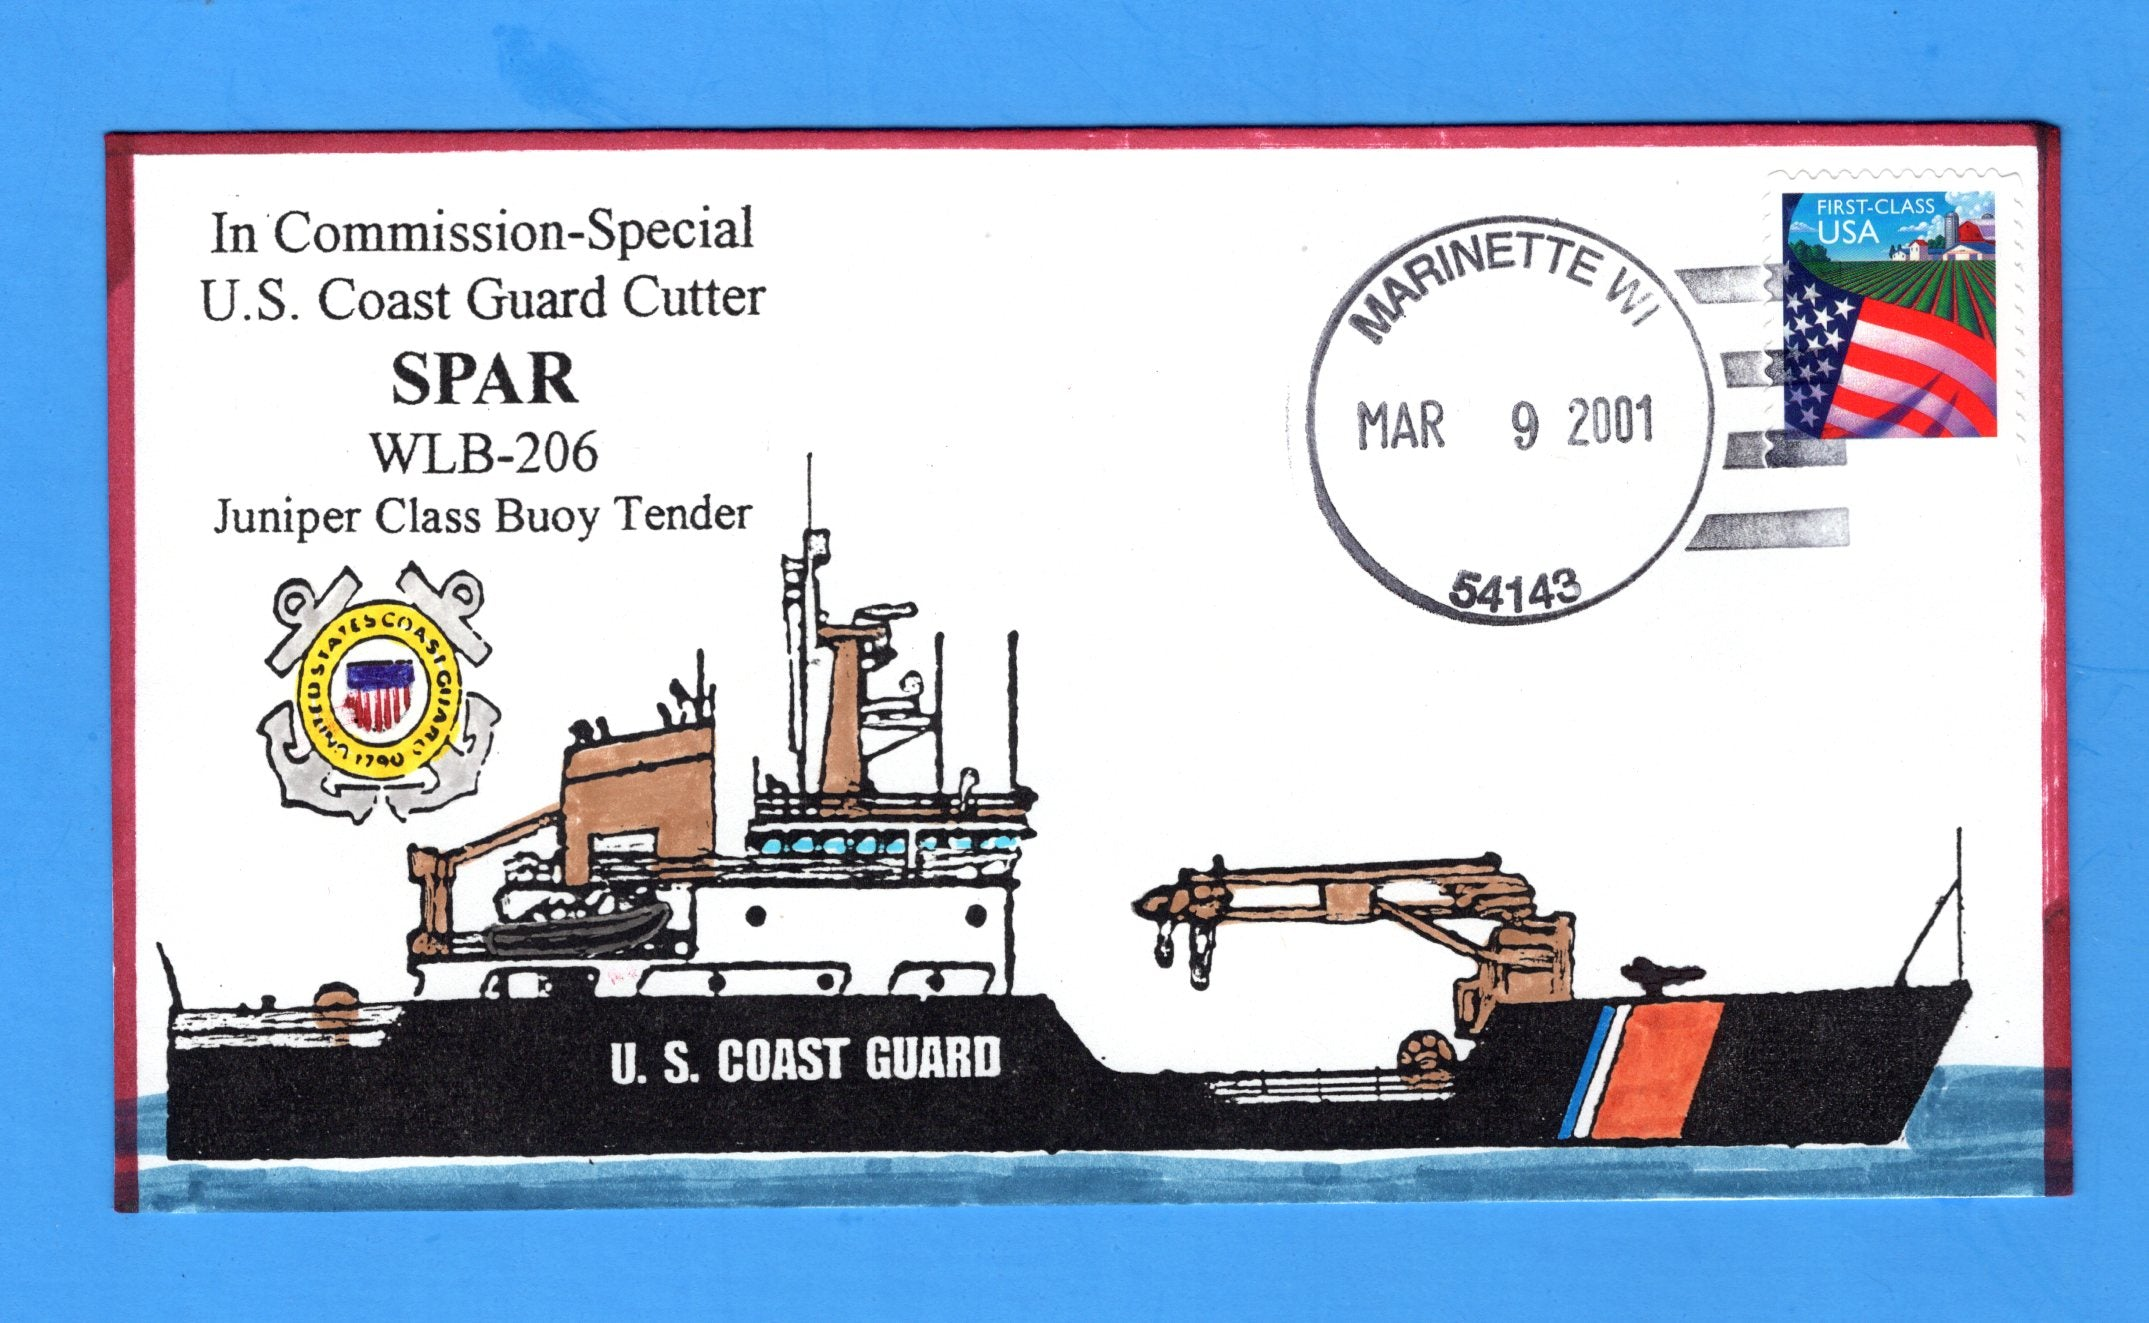 USCGC Spar WLB-206 Juniper Class Buoy Tender Commission-special March 9, 2001 - Hand Drawn and Colored Cachet by Bill Everett